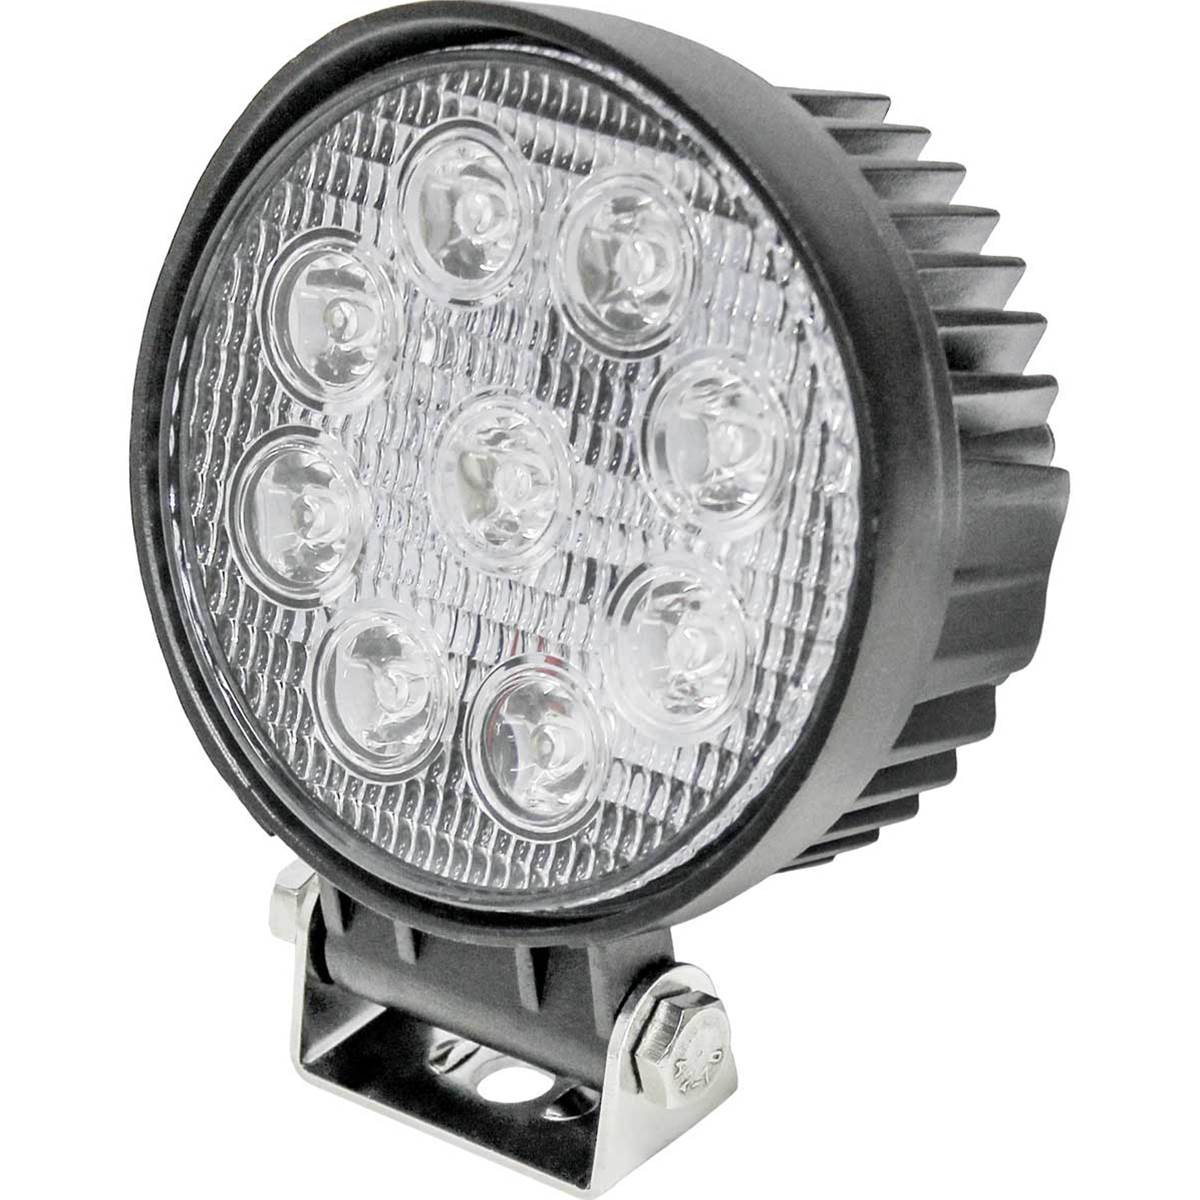 "KM LED 4.25"" Work Light - Spot Beam"